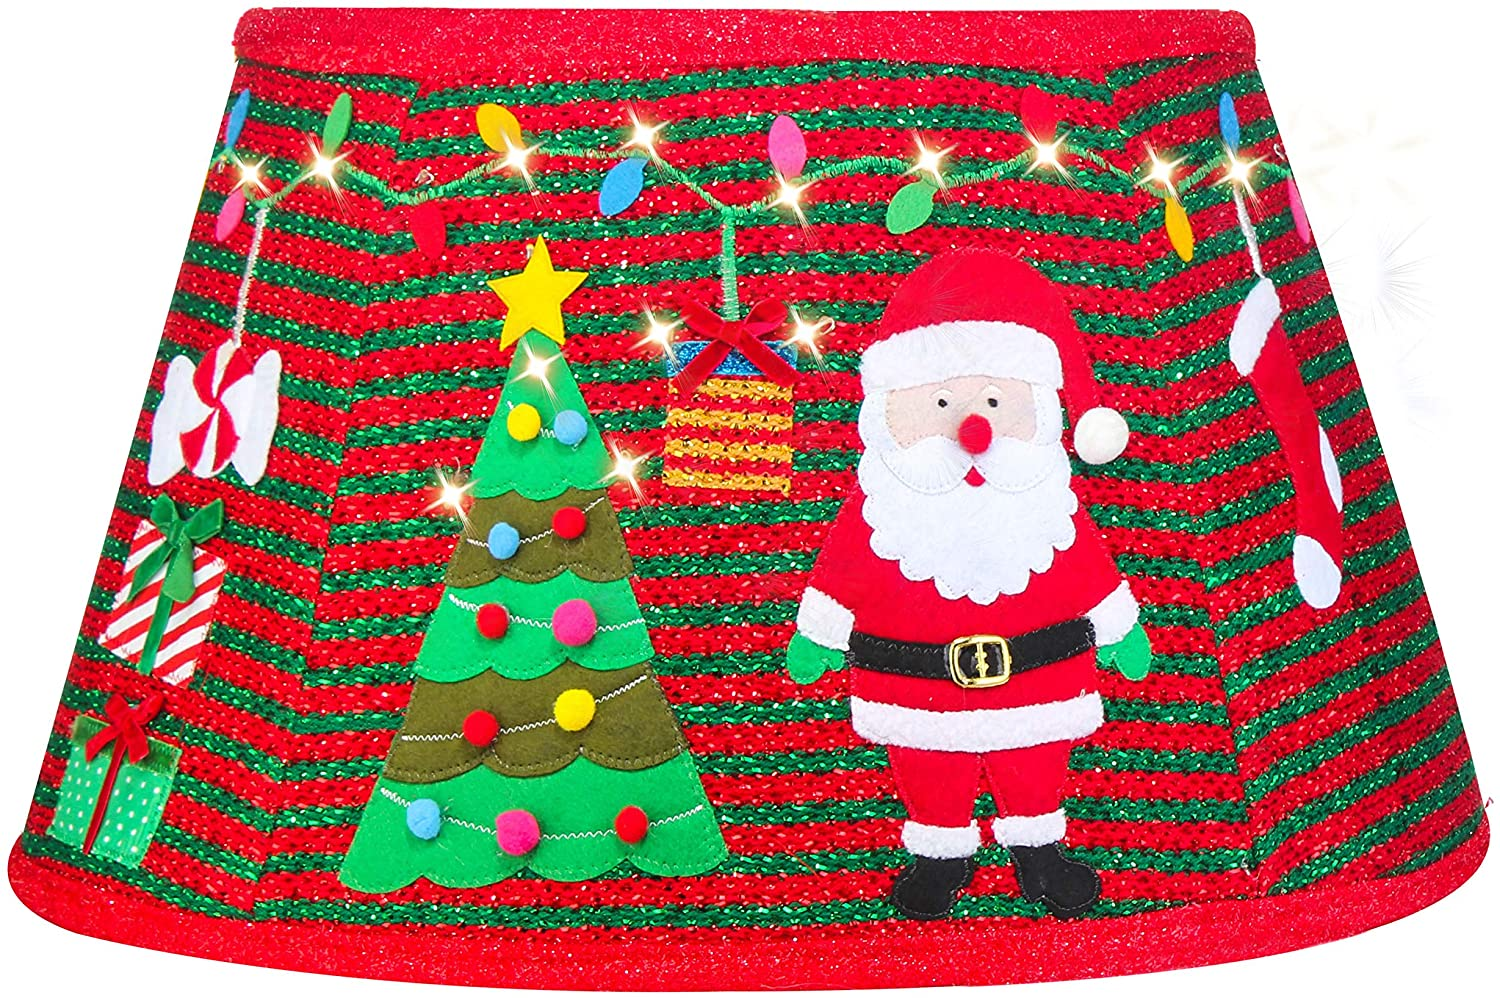 Yomikoo Christmas Tree Collar,Tree Stand Band with Santa Pattern for Christmas Tree,Home Decoration, Tree Decorate